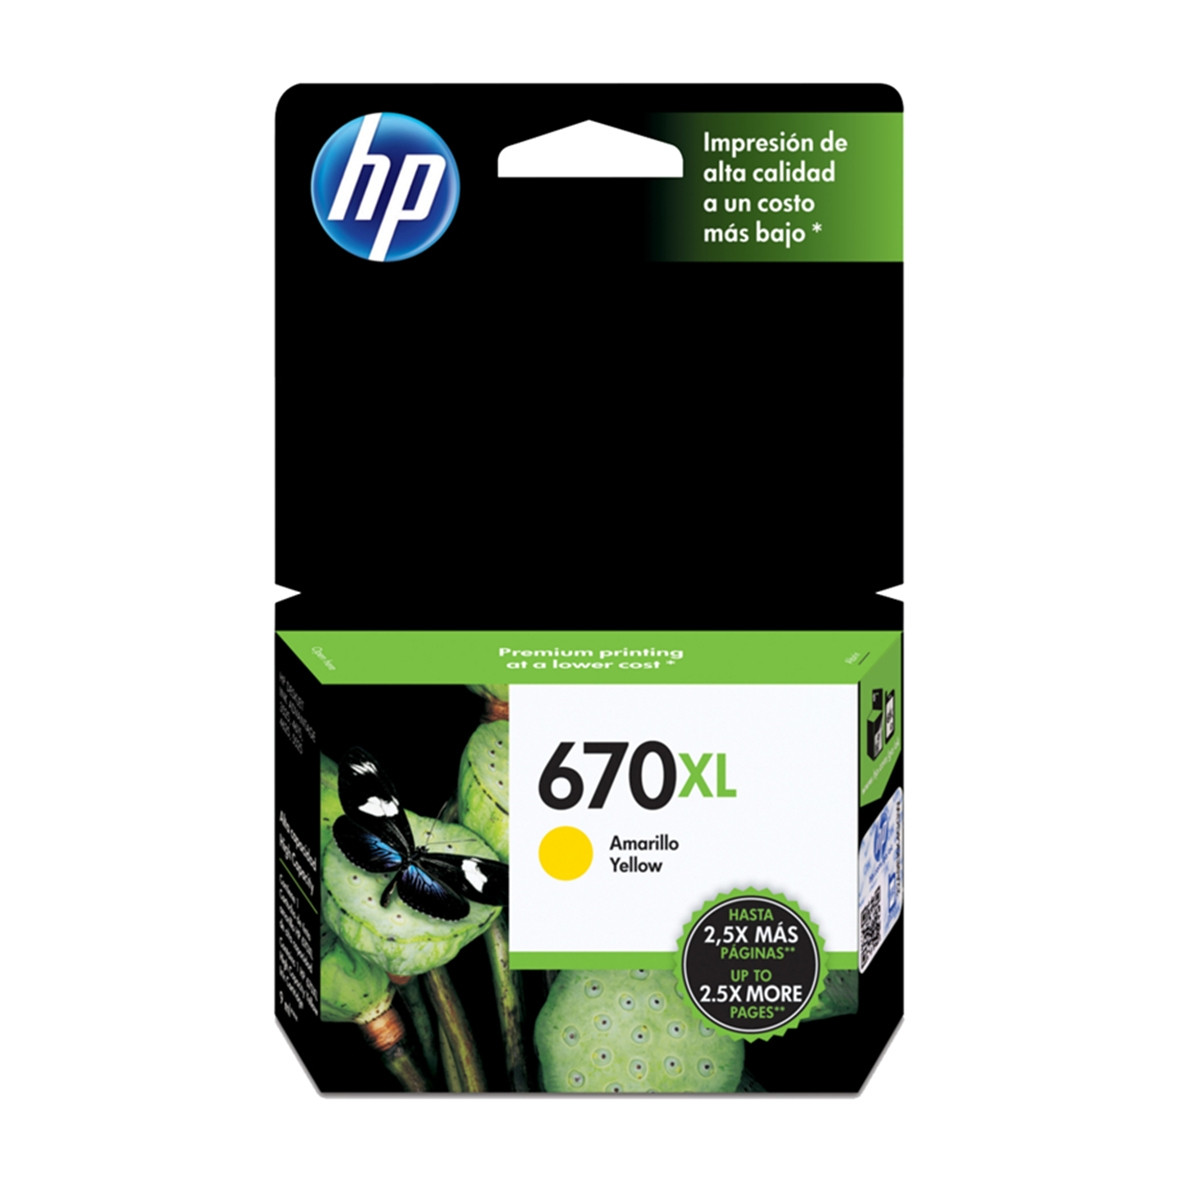 Cartucho de Tinta HP 670XL CZ120AB Amarelo | Original HP | 9 ml